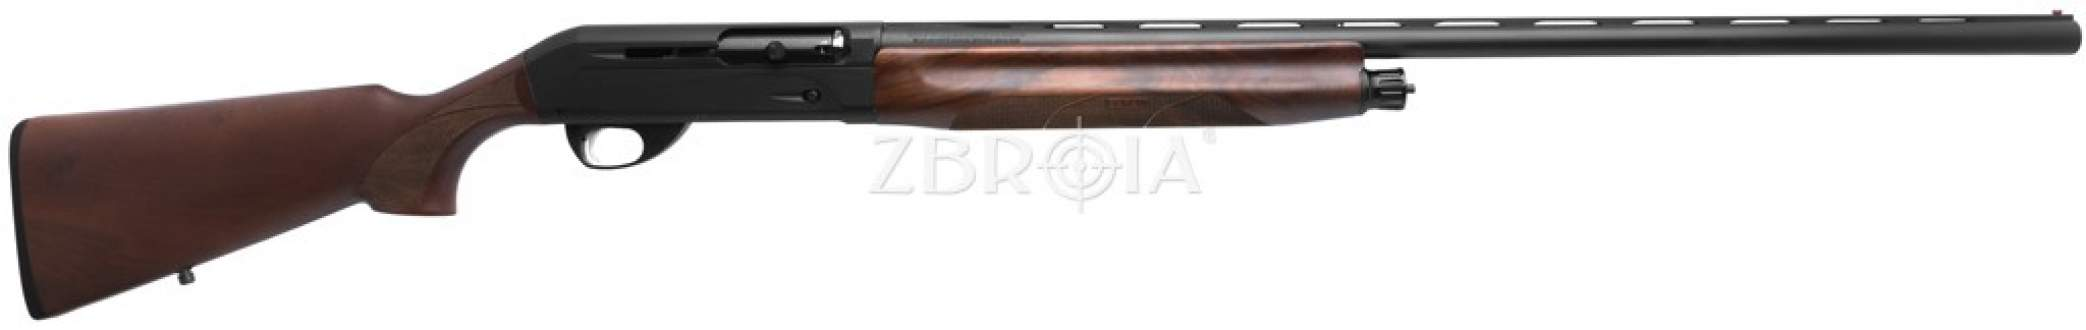 Ружье Benelli Bellmonte I Wood кал. 12/76